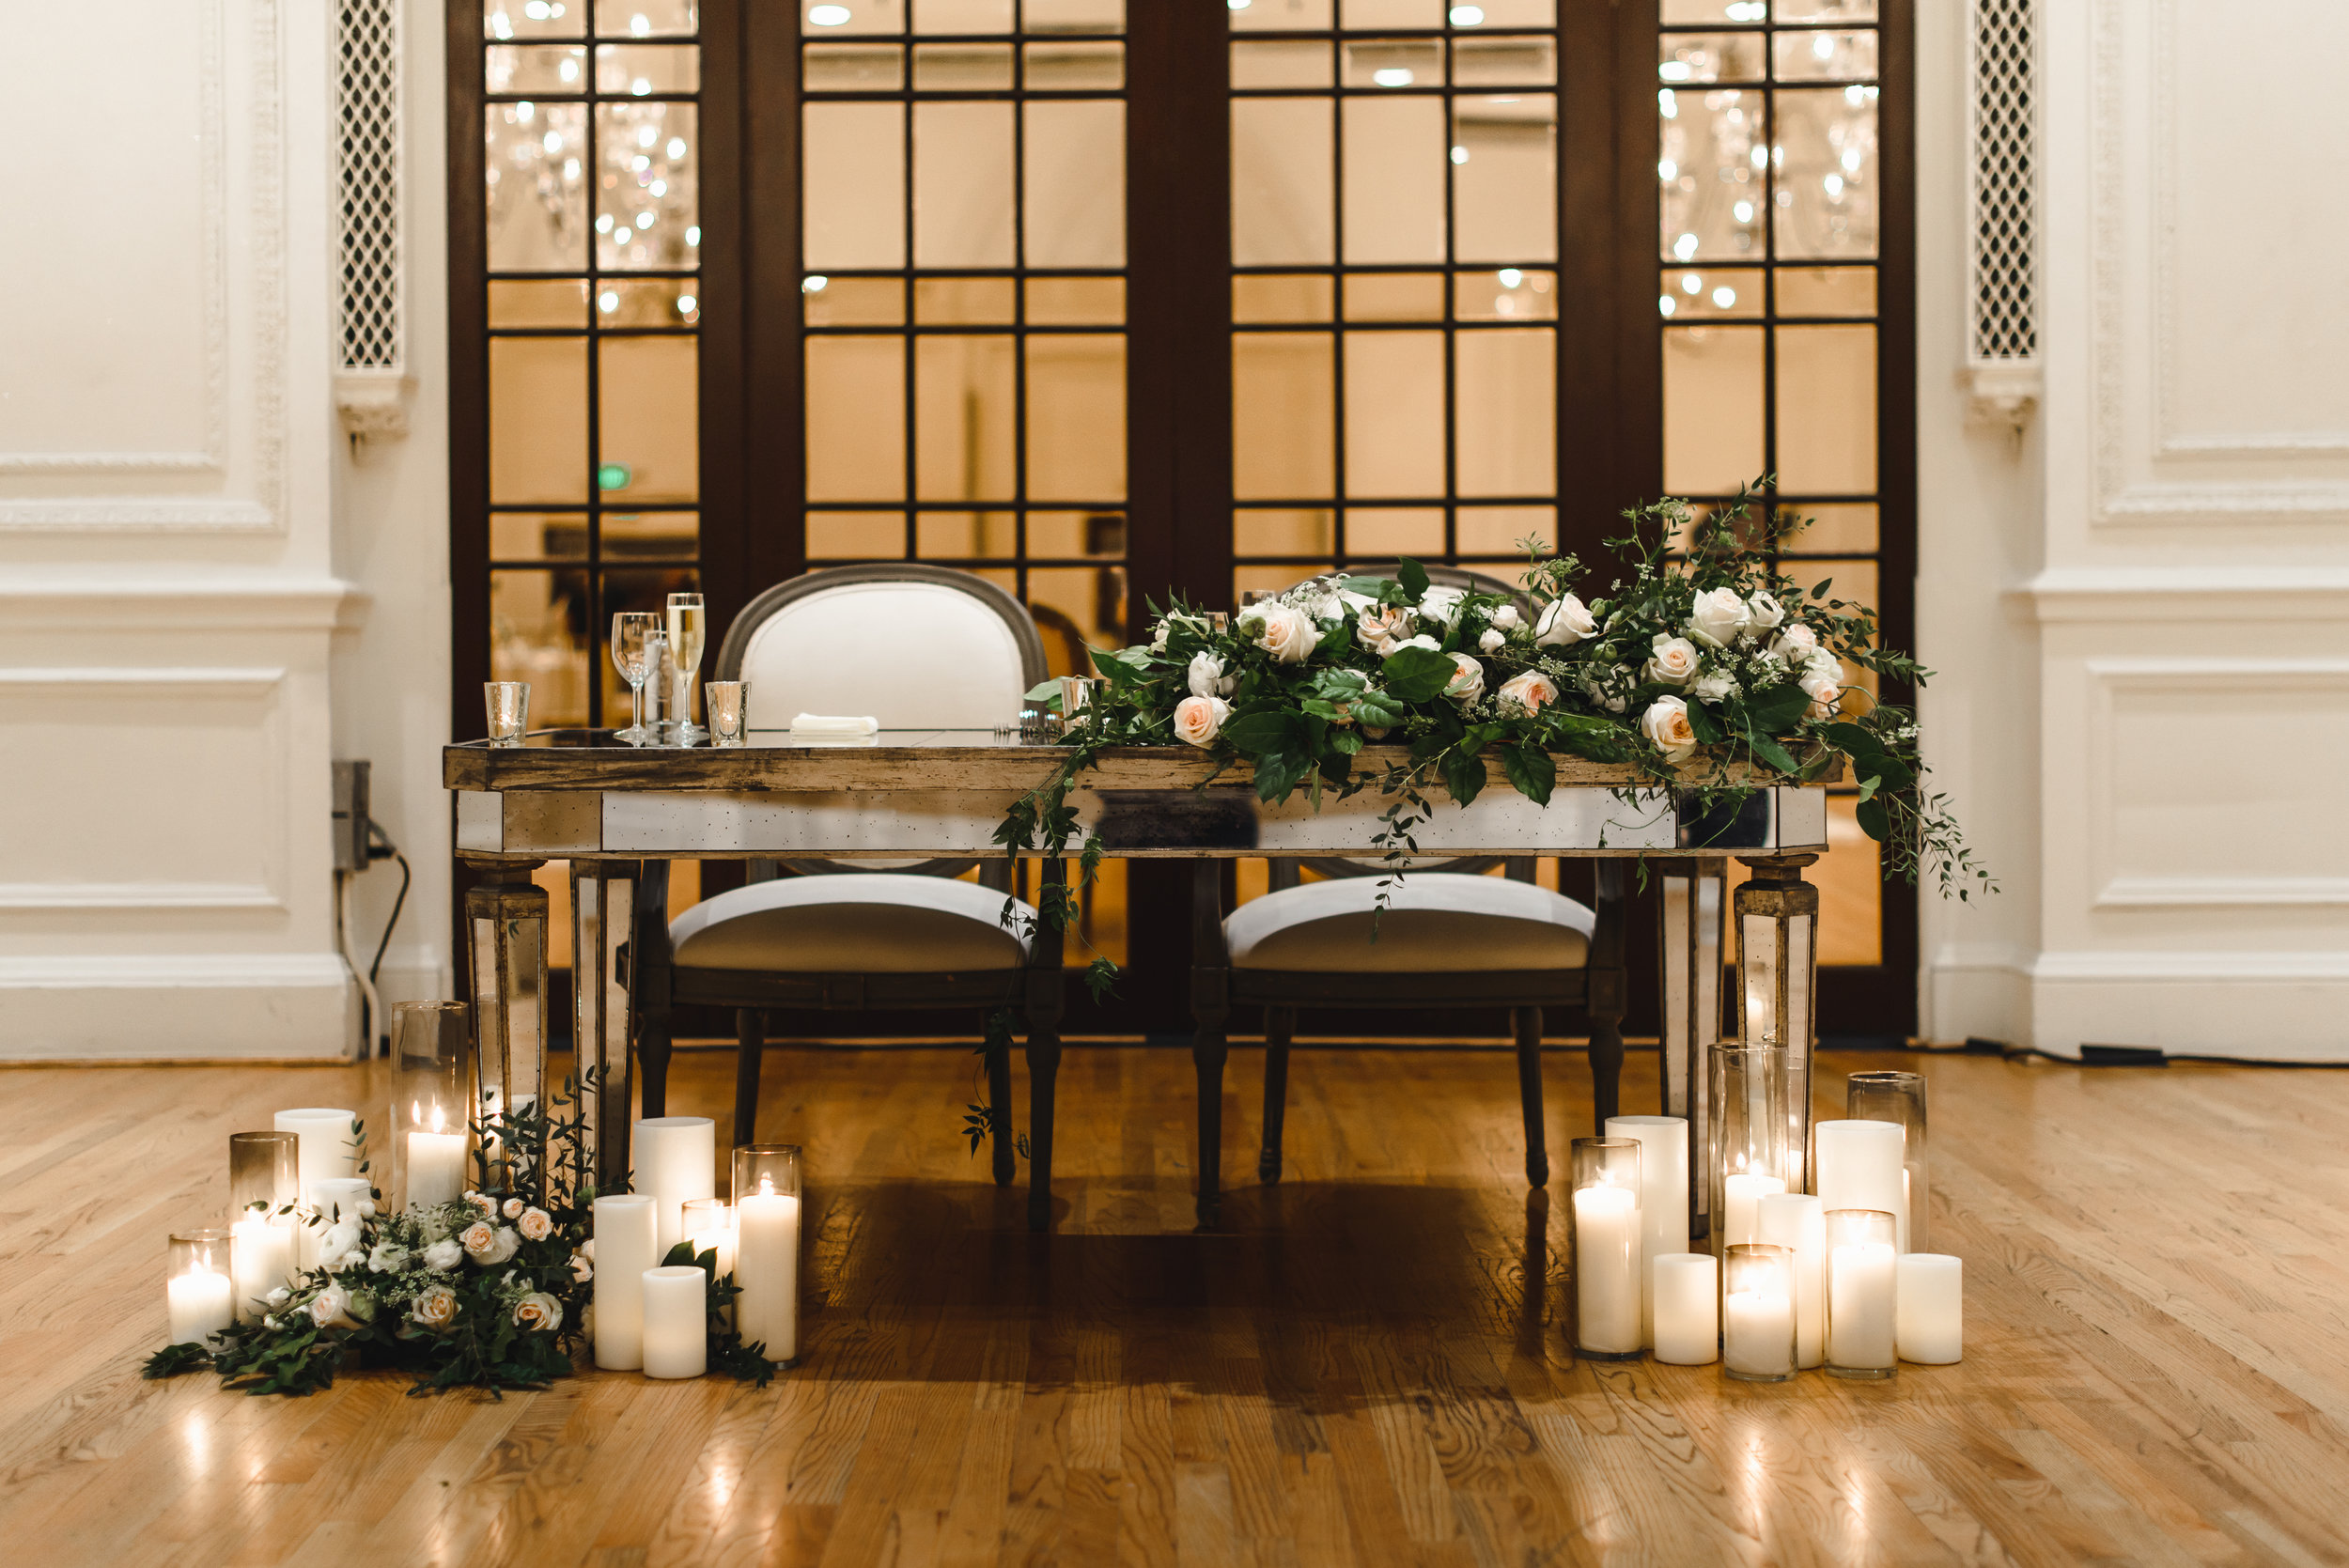 blush and white sweetheart table flowers with candles #lrqcfloral #sweetheart .jpg